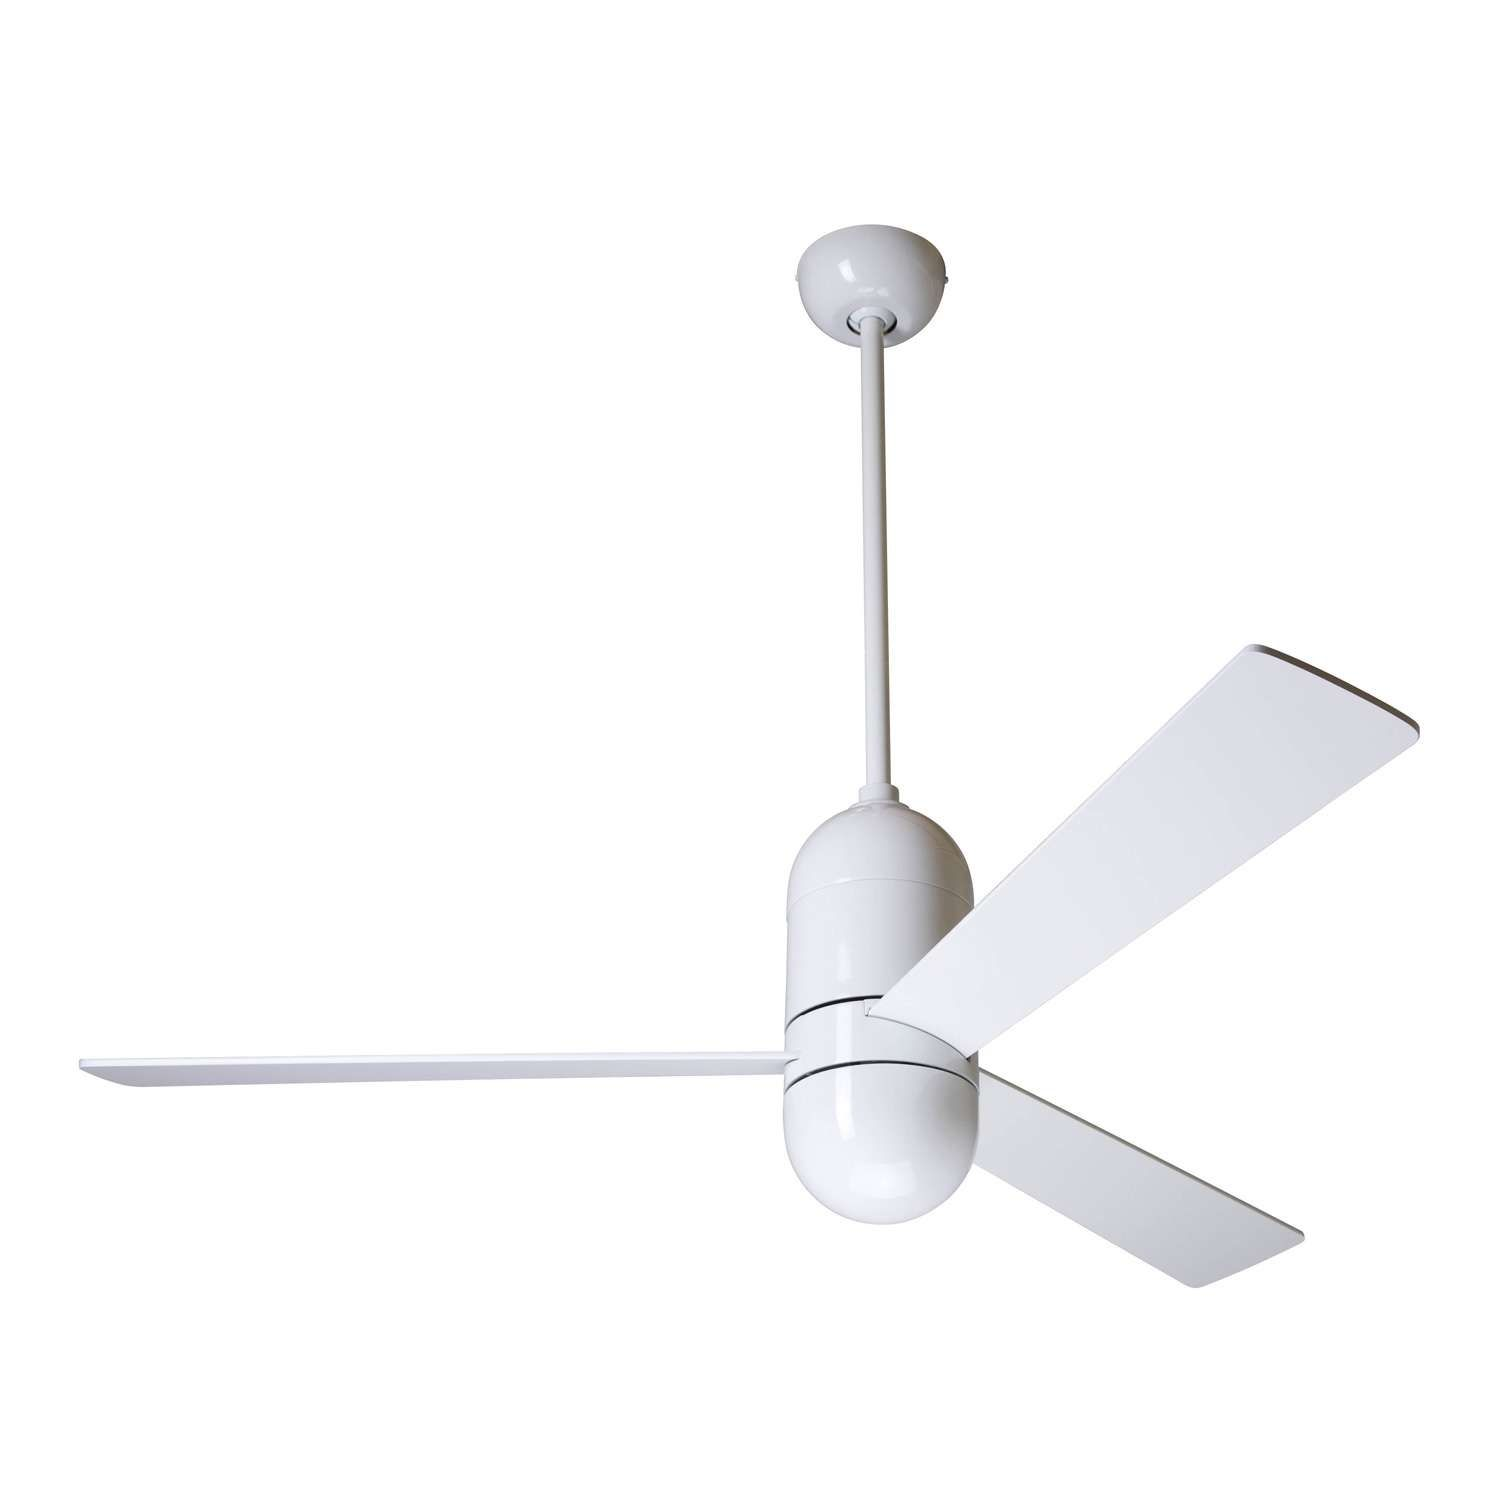 Cirrus Ceiling Fan Light Kit o